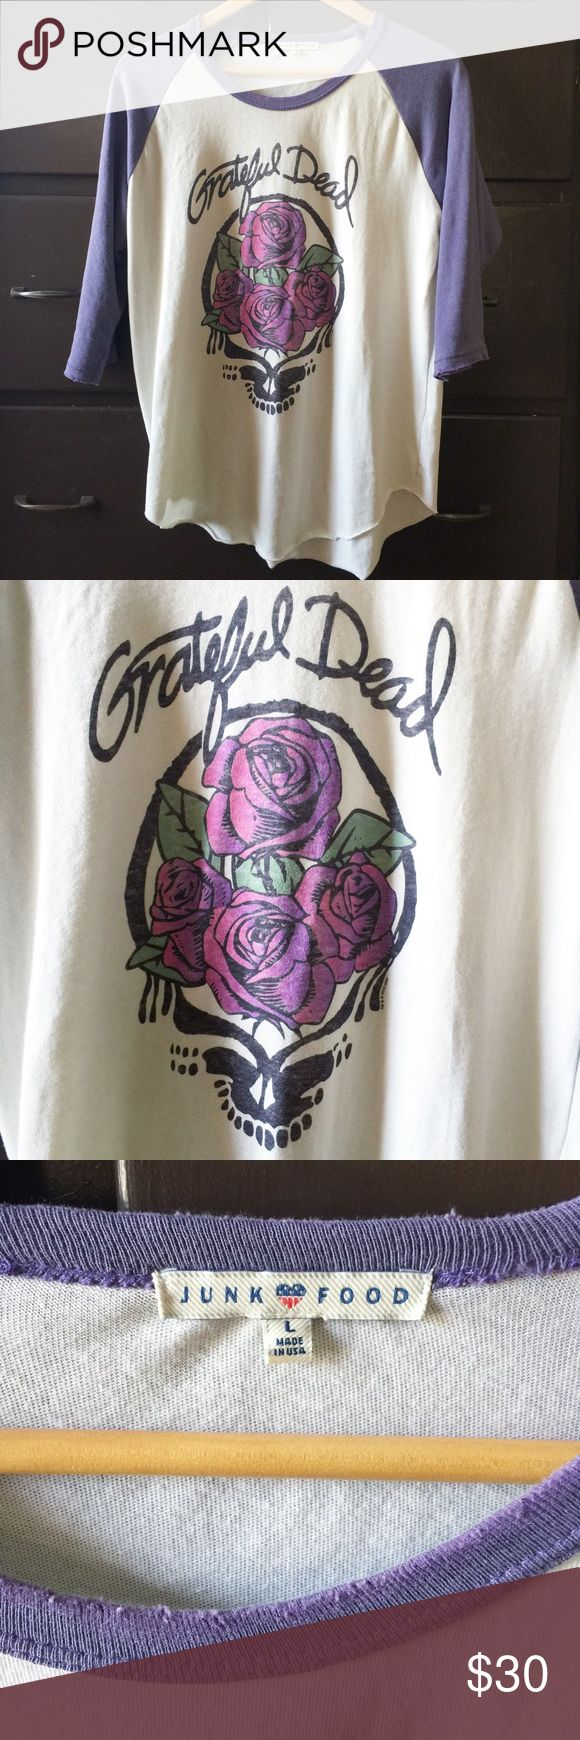 Junk Food Clothing Grateful Dead baseball t shirt Excellent condition; worn once. 3/4 purple sleeves and white shirt. Junk Food Tops Tees - Long Sleeve